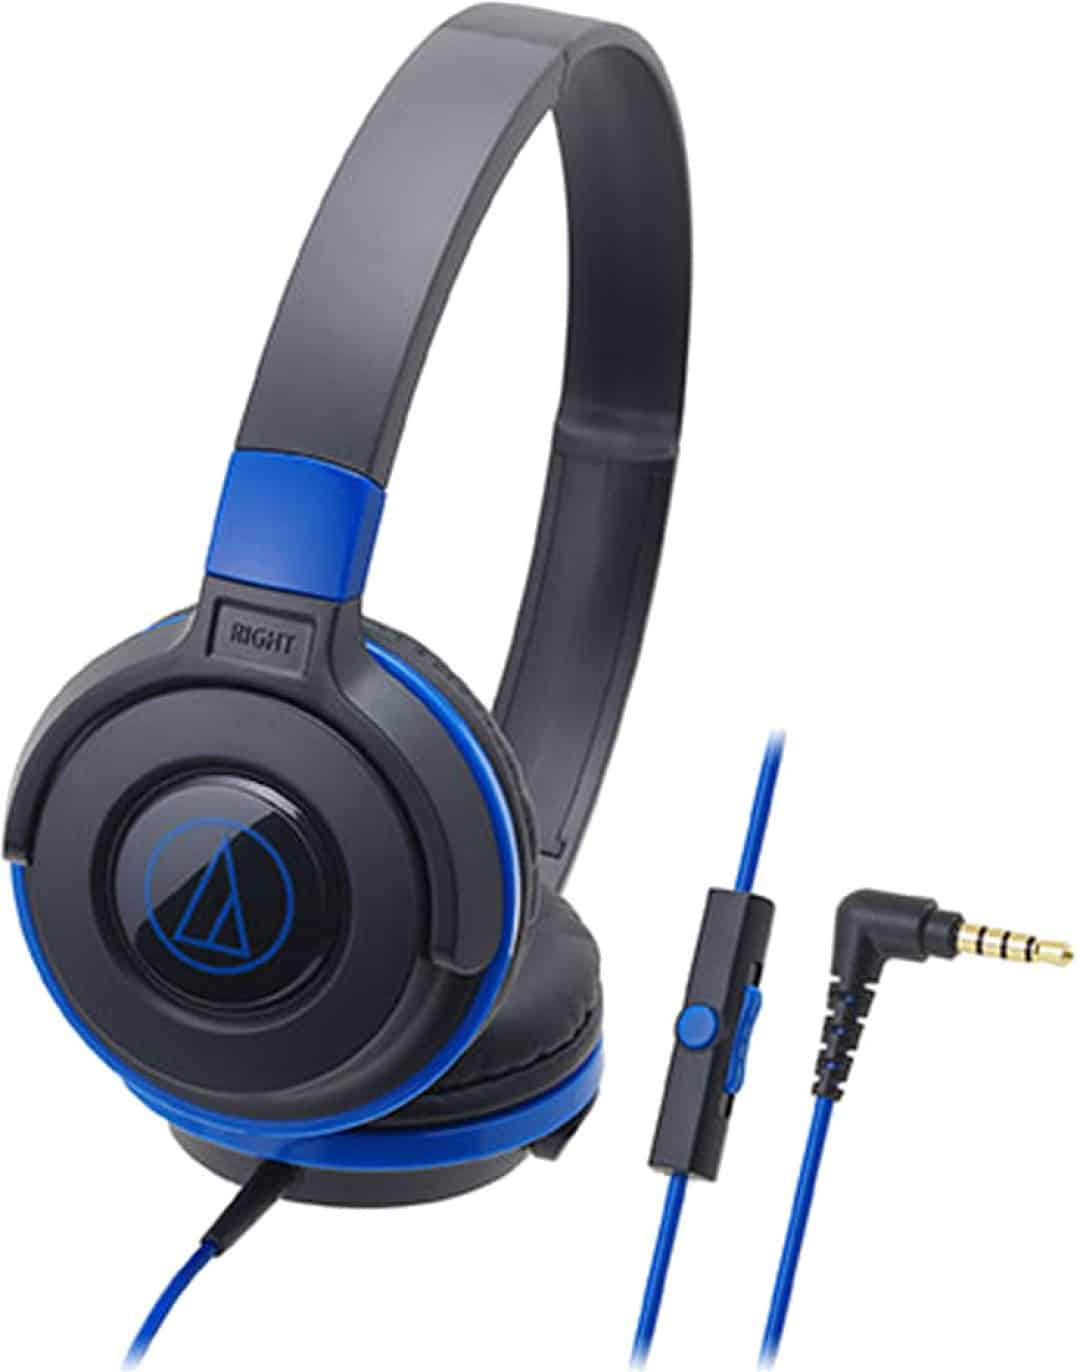 Audio Technica ATH-S100iS Wired Headset With Mic Rs. 699